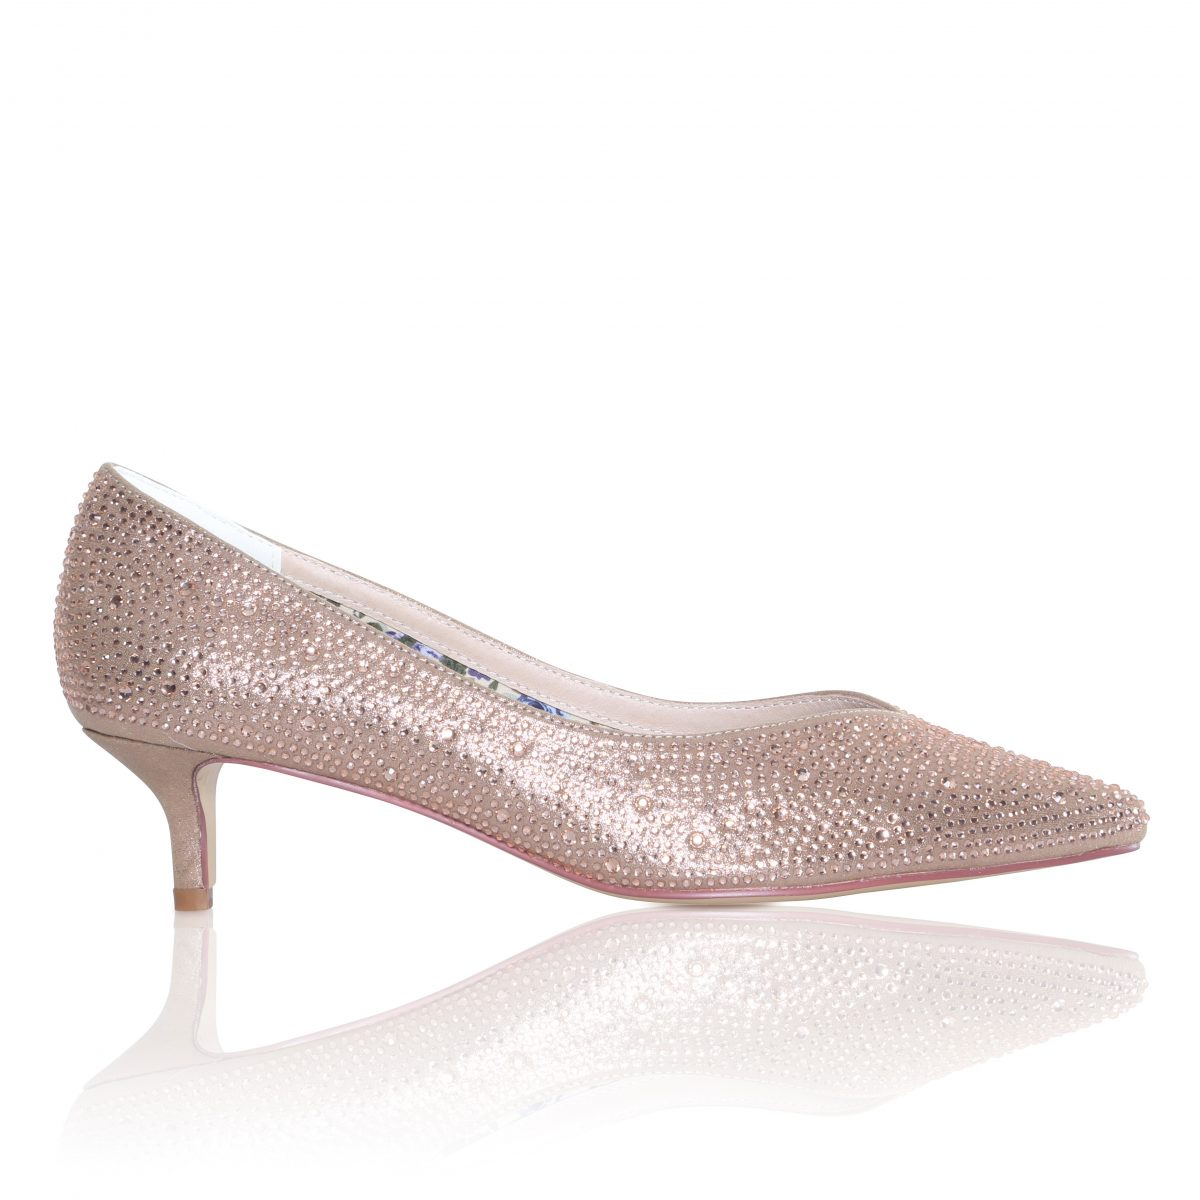 Perfect Bridal Stella Shoes - Crystal Encrusted Gold Satin